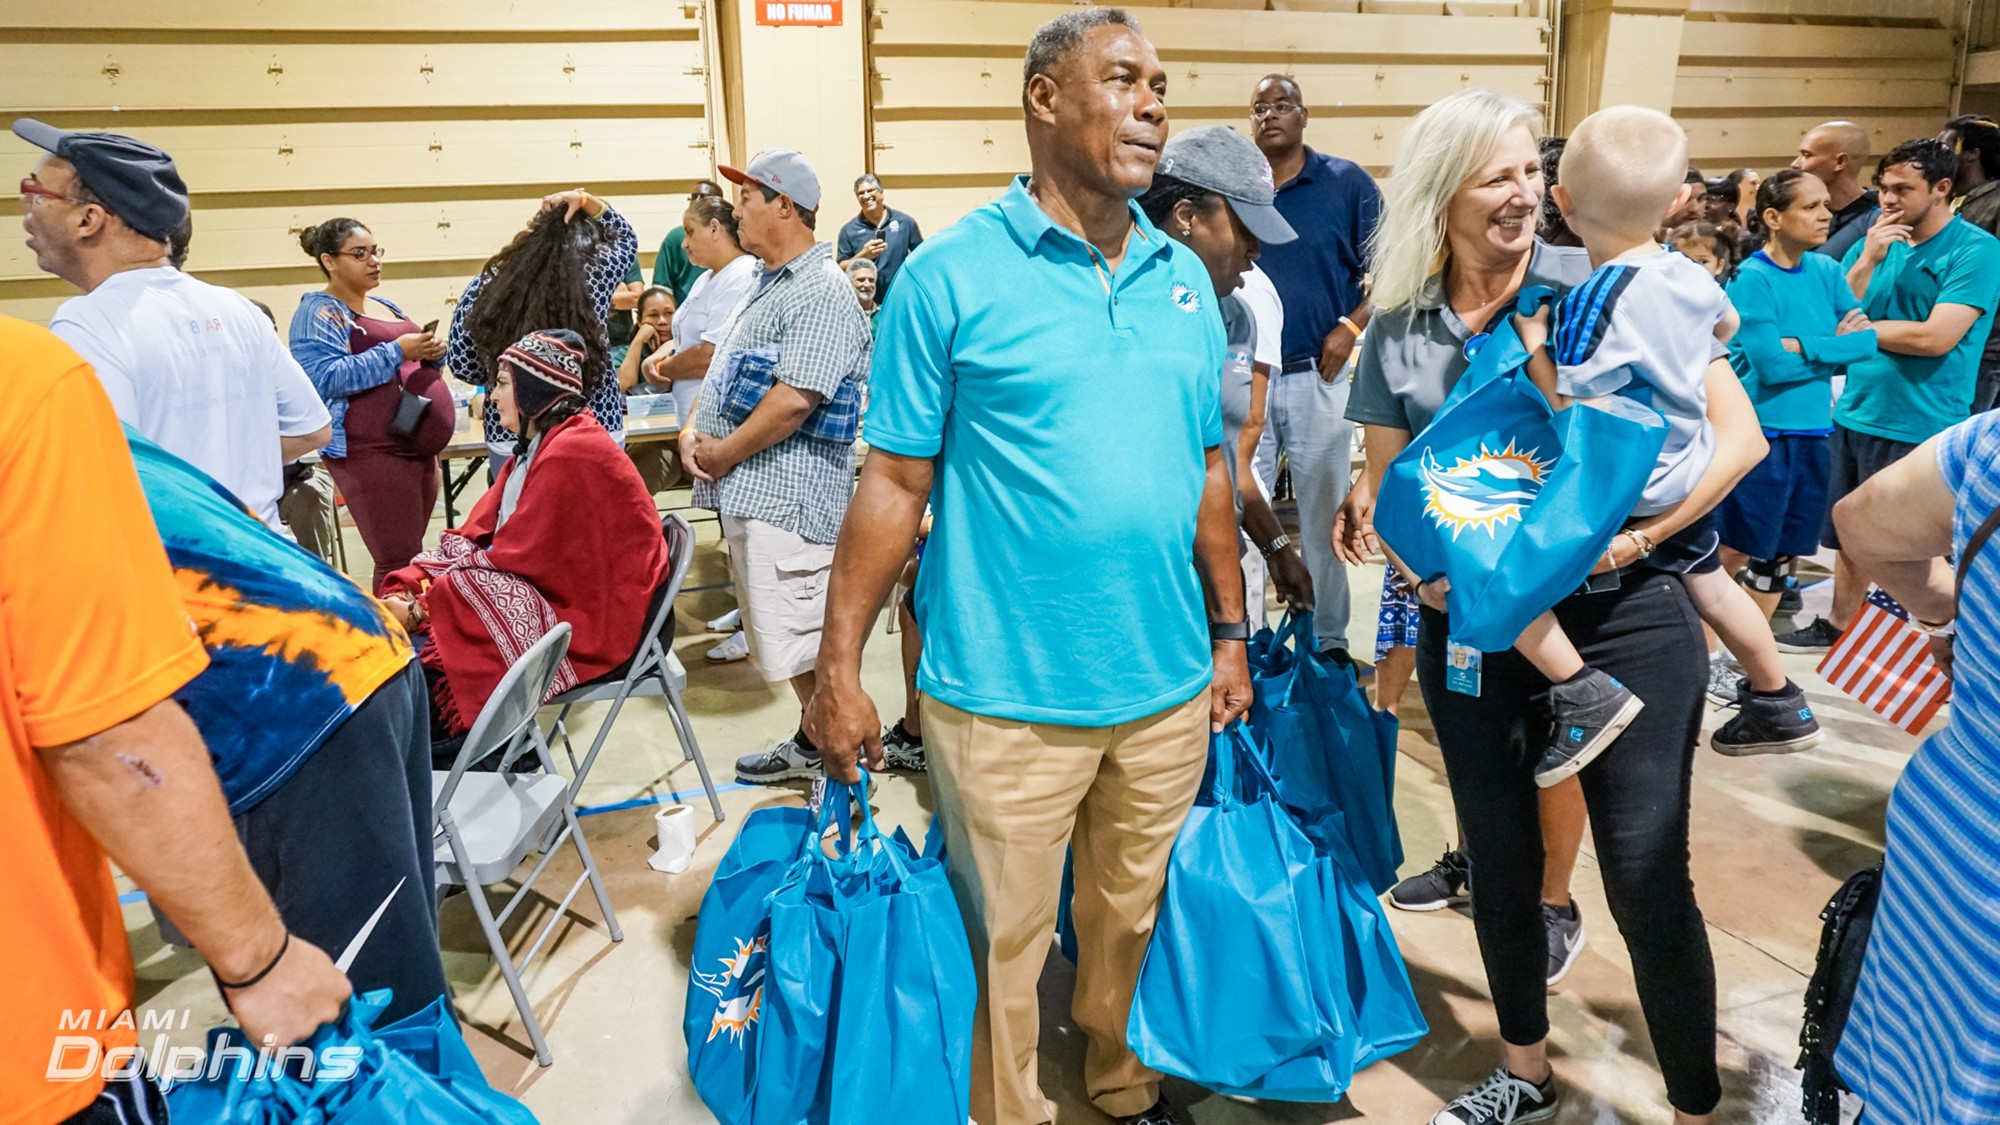 Miami Dolphins SVP and alum Nat Moore and SVP of MDF and DCC Jennifer Jehn at Red Cross Shelter